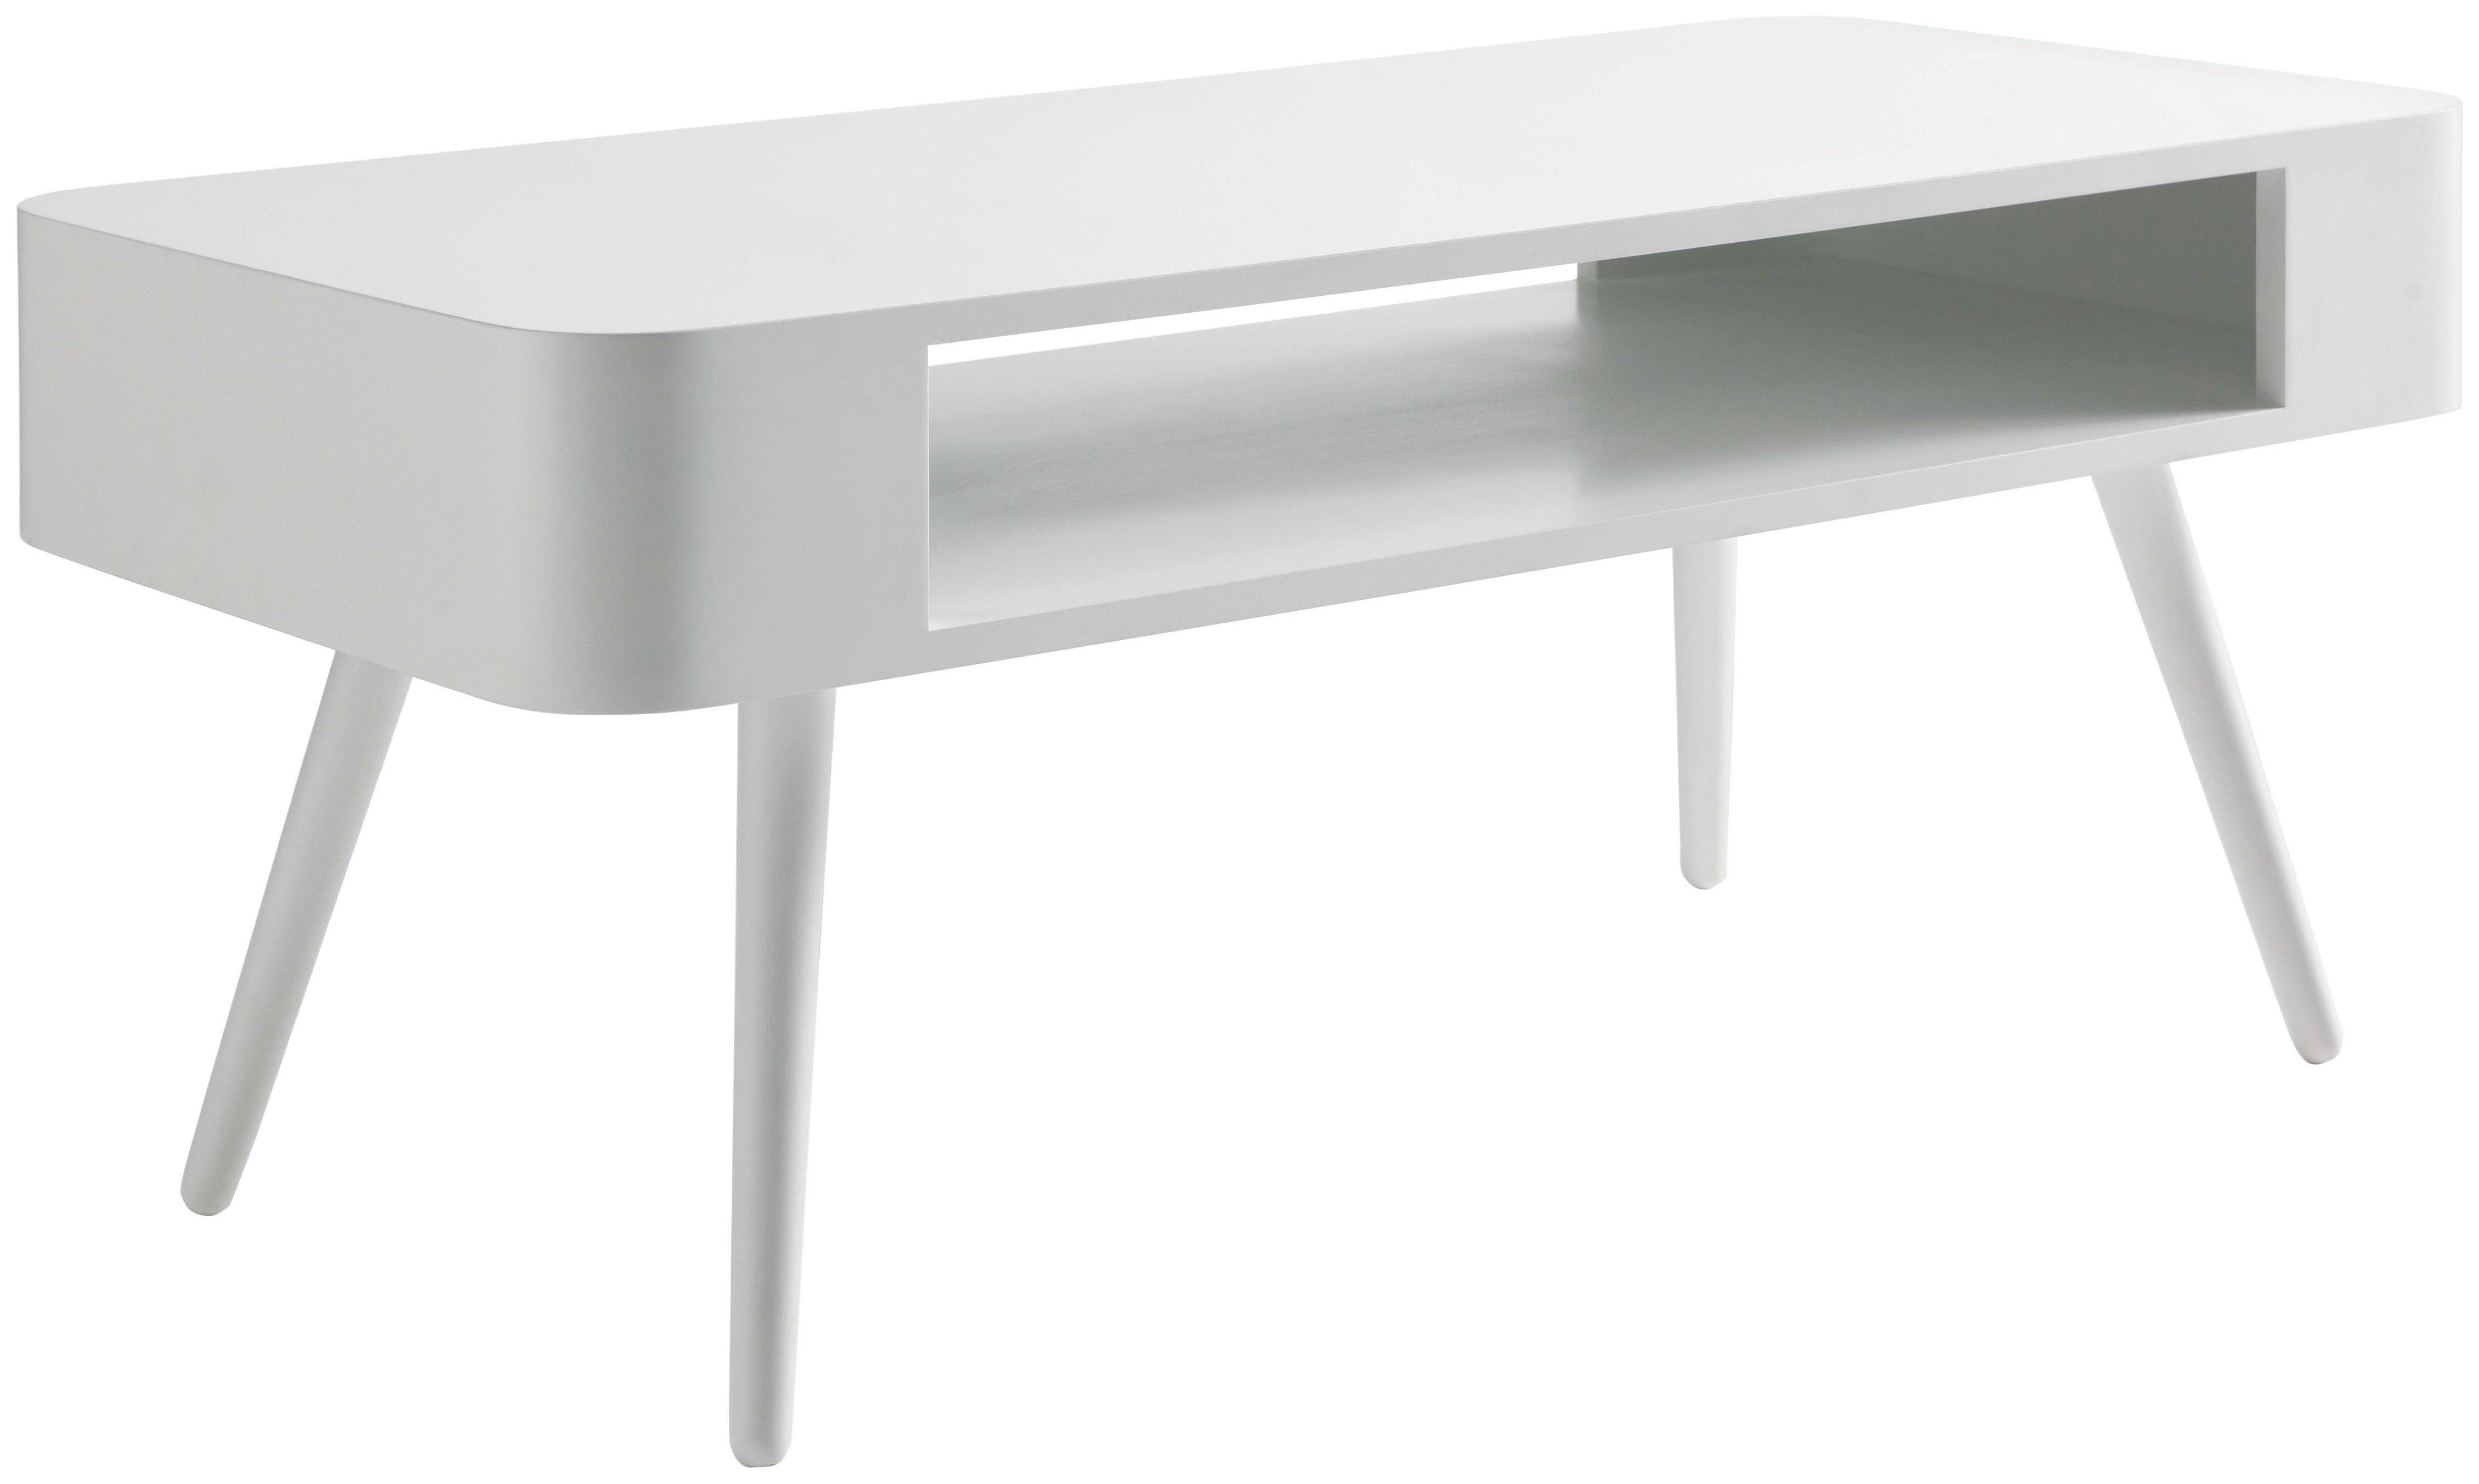 Habitat Coffee tables side tables and nest of tables Argos